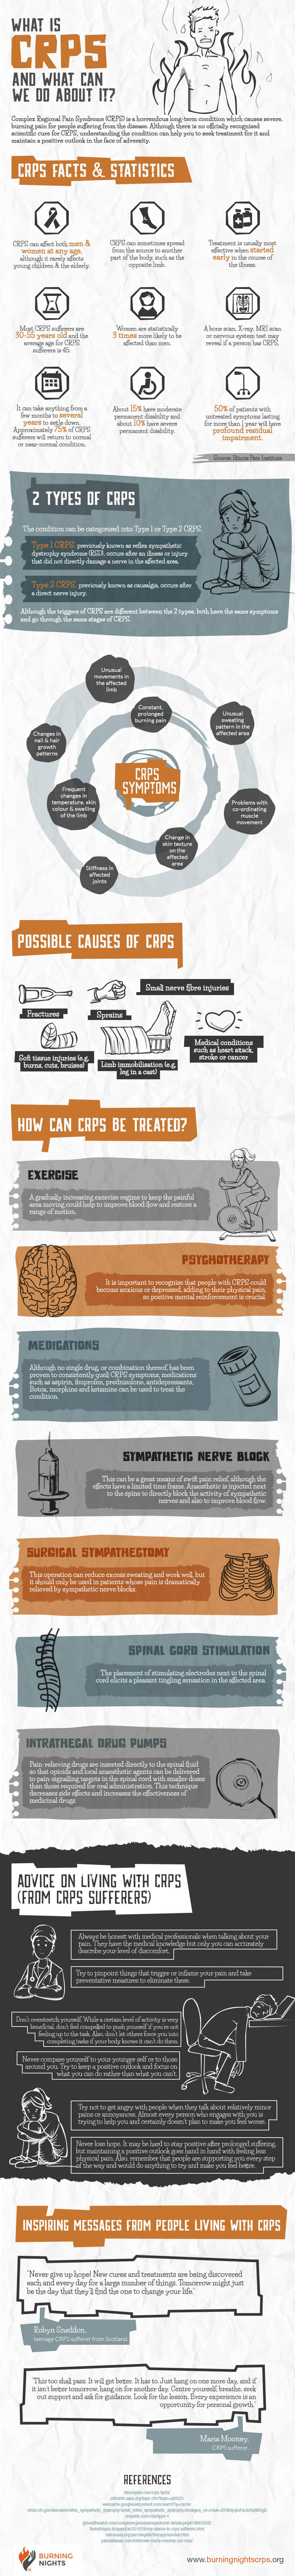 What-is-CRPS-and-What-Can-We-Do-About-It-Infographic-plaza